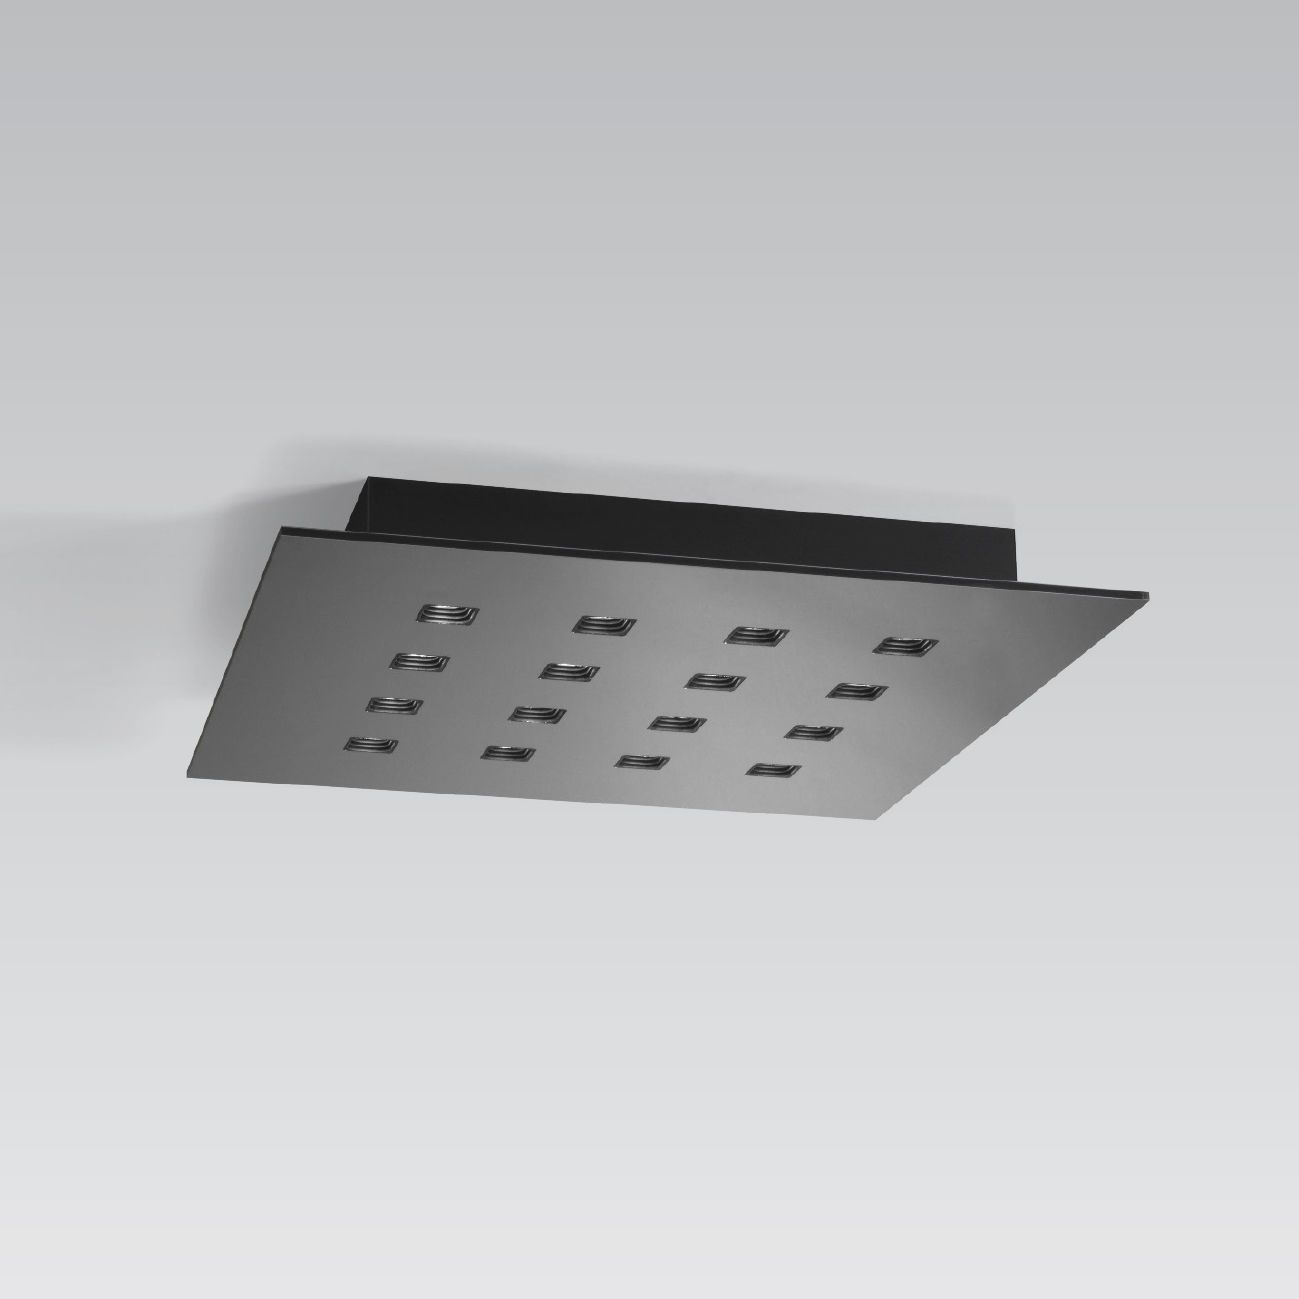 Recessed ceiling light fixture fluorescent led square combo discover all the information about the product recessed ceiling light fixture fluorescent led square combo xenon architectural lighting and find arubaitofo Gallery